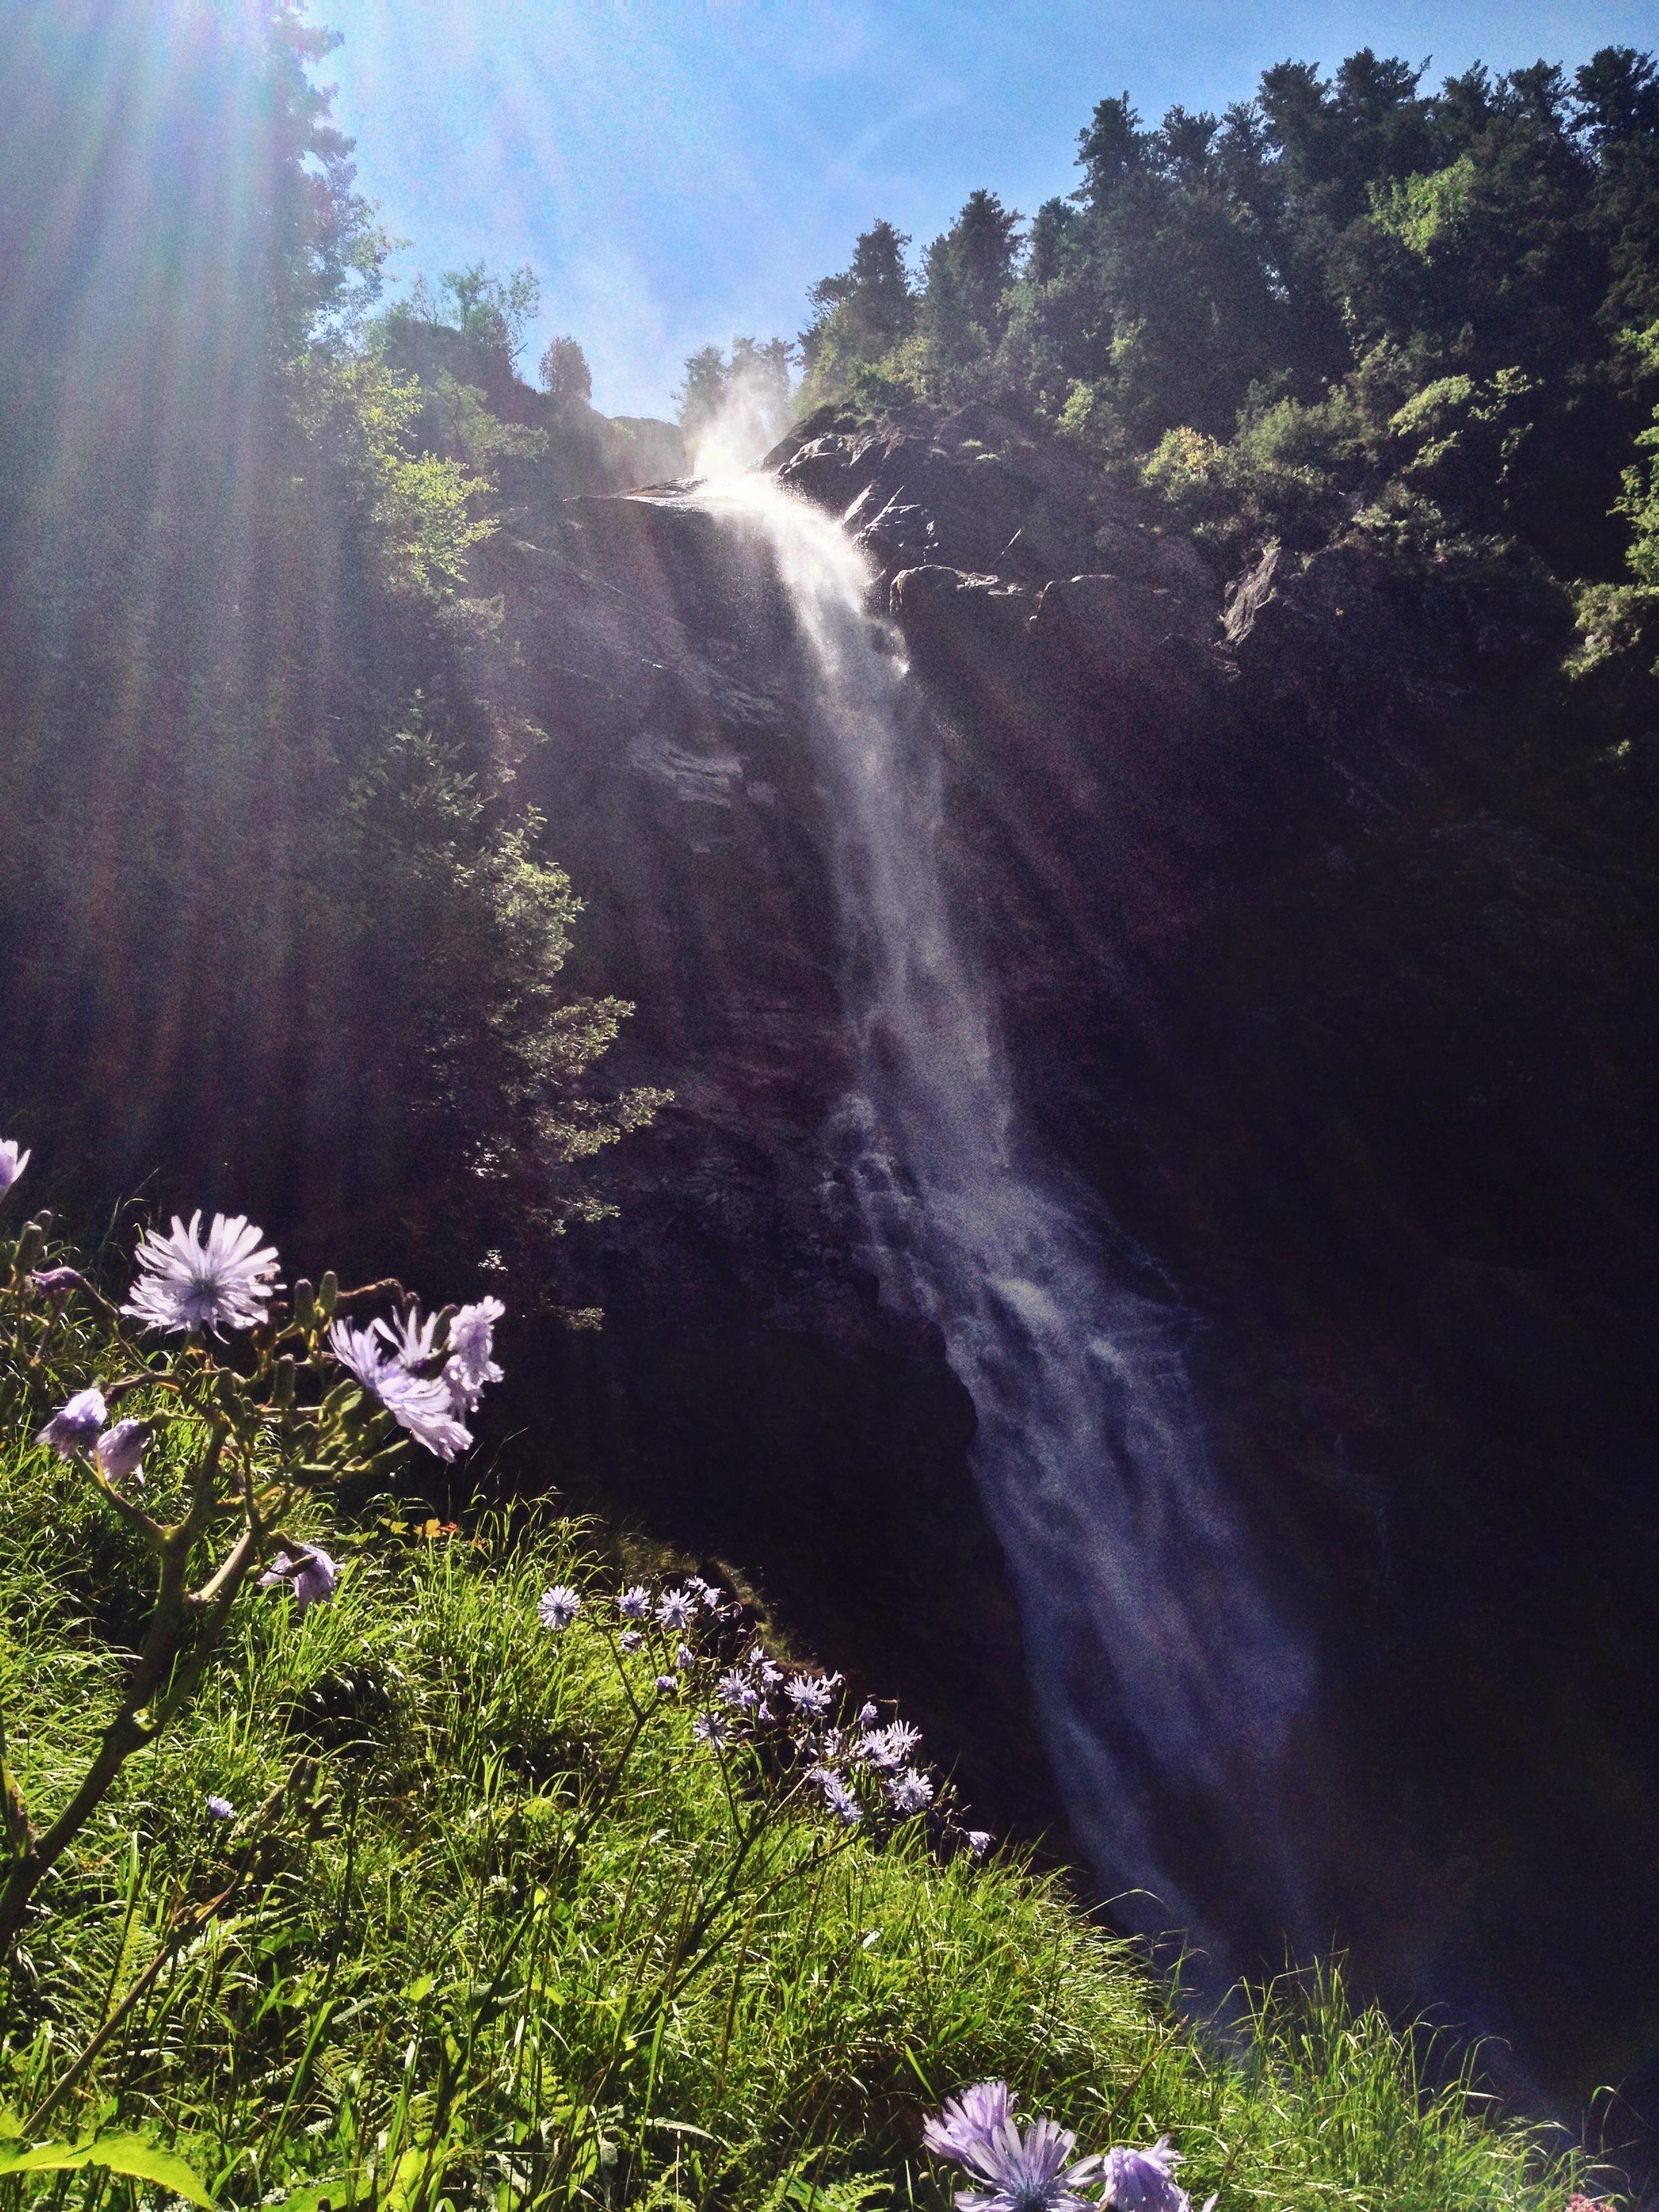 The beautiful Cascade d'Ars (Ars Waterfall). It must be amazing in early spring